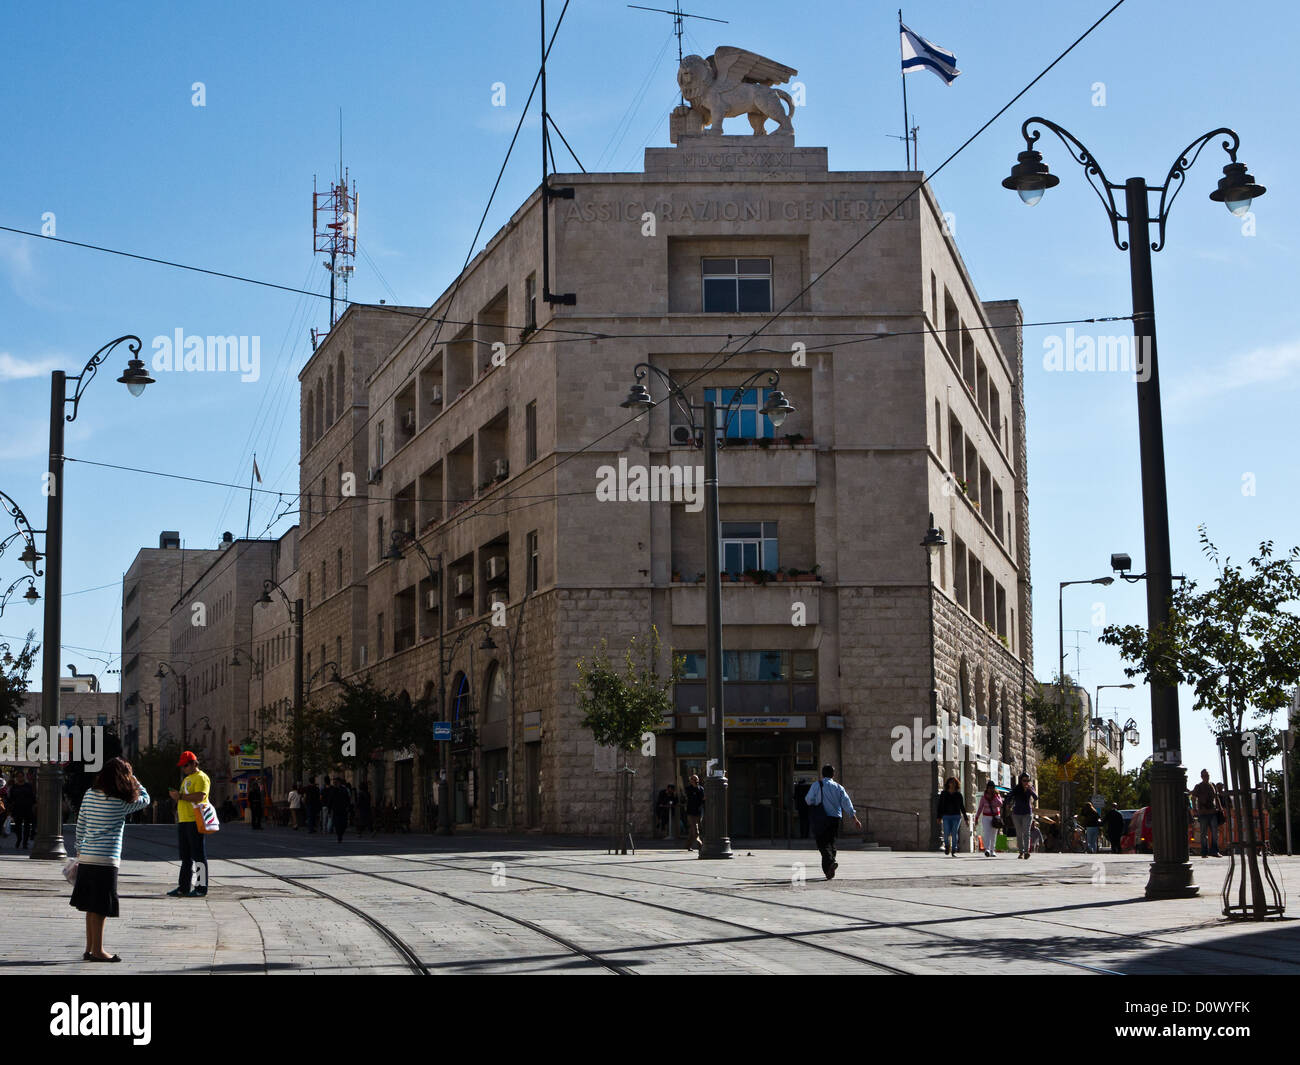 The Generali Building, located at the intersection of Jaffa and Shlomzion Hamalka in downtown Jerusalem. - Stock Image